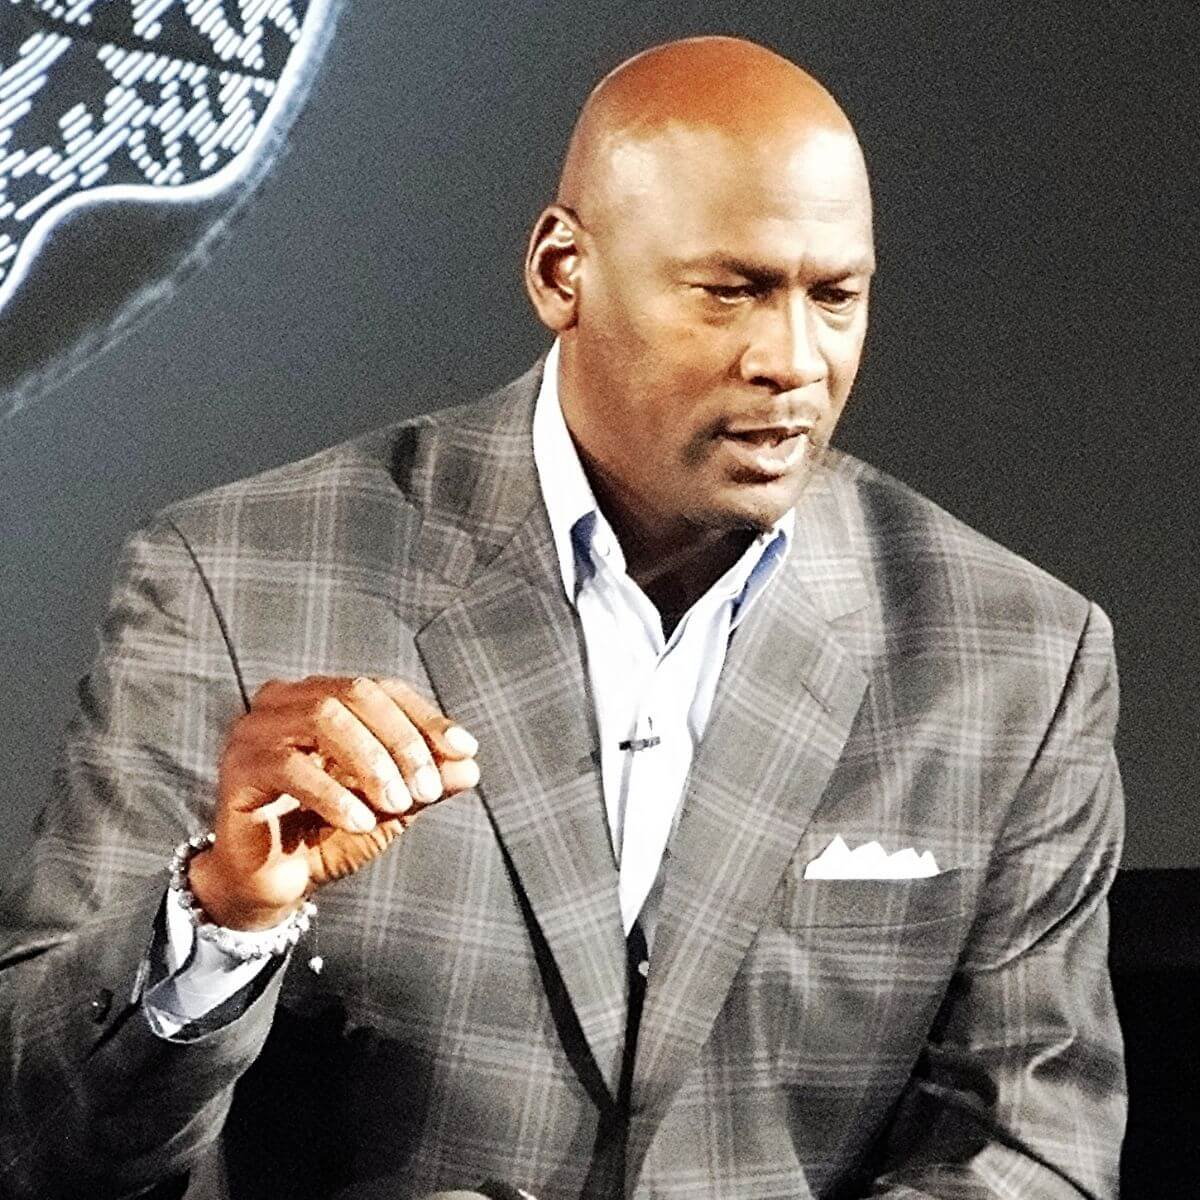 Michael Jordan talking while seated.